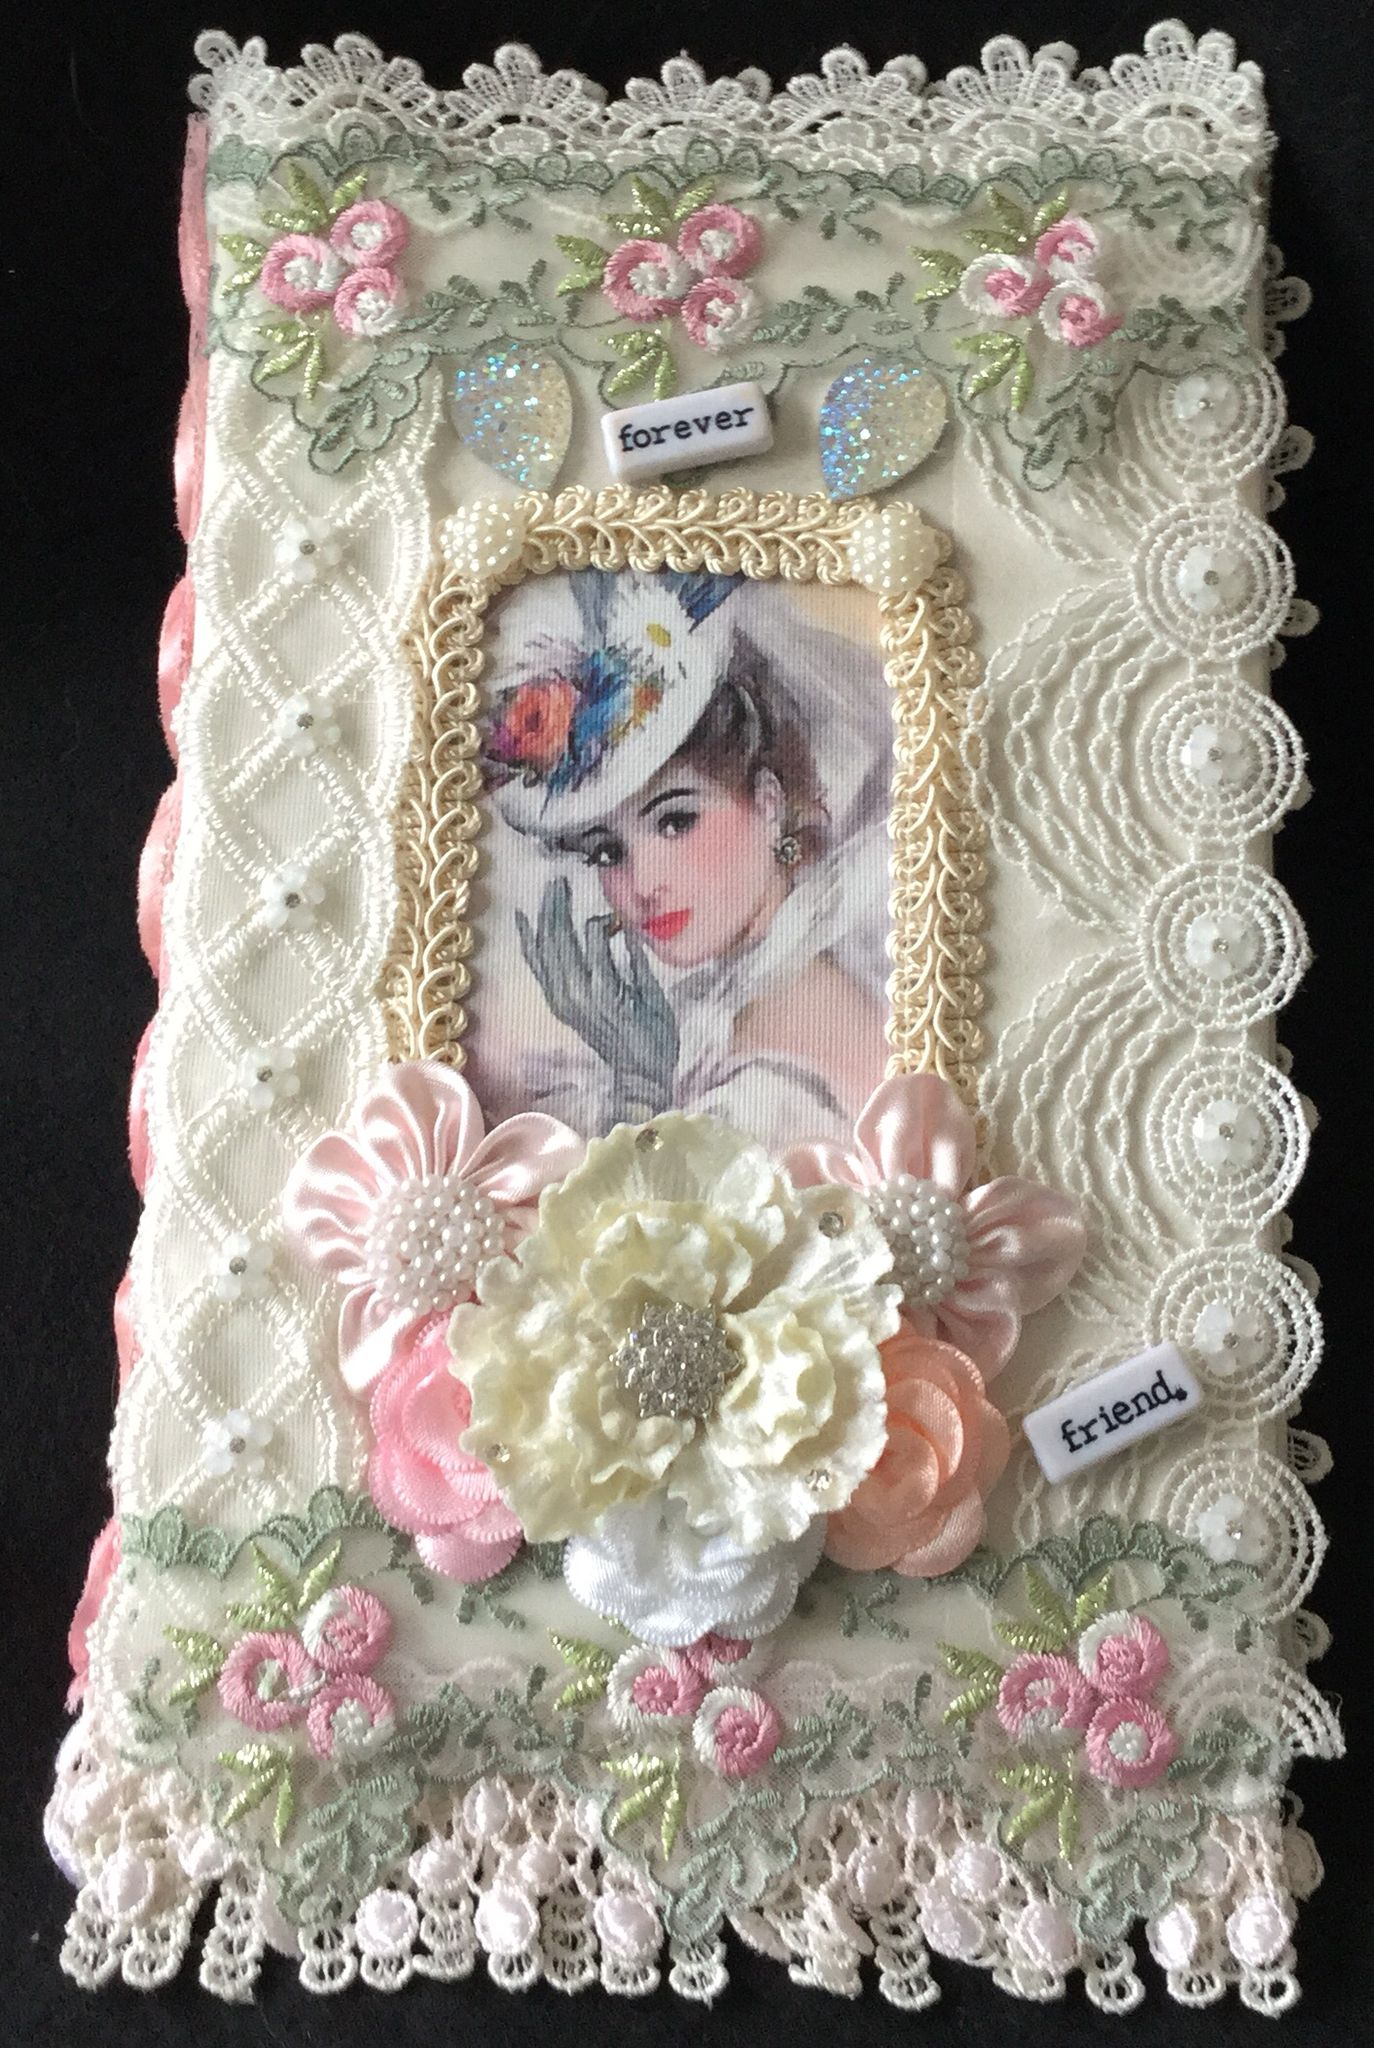 A removable book cover shabby chic journal lace crafts